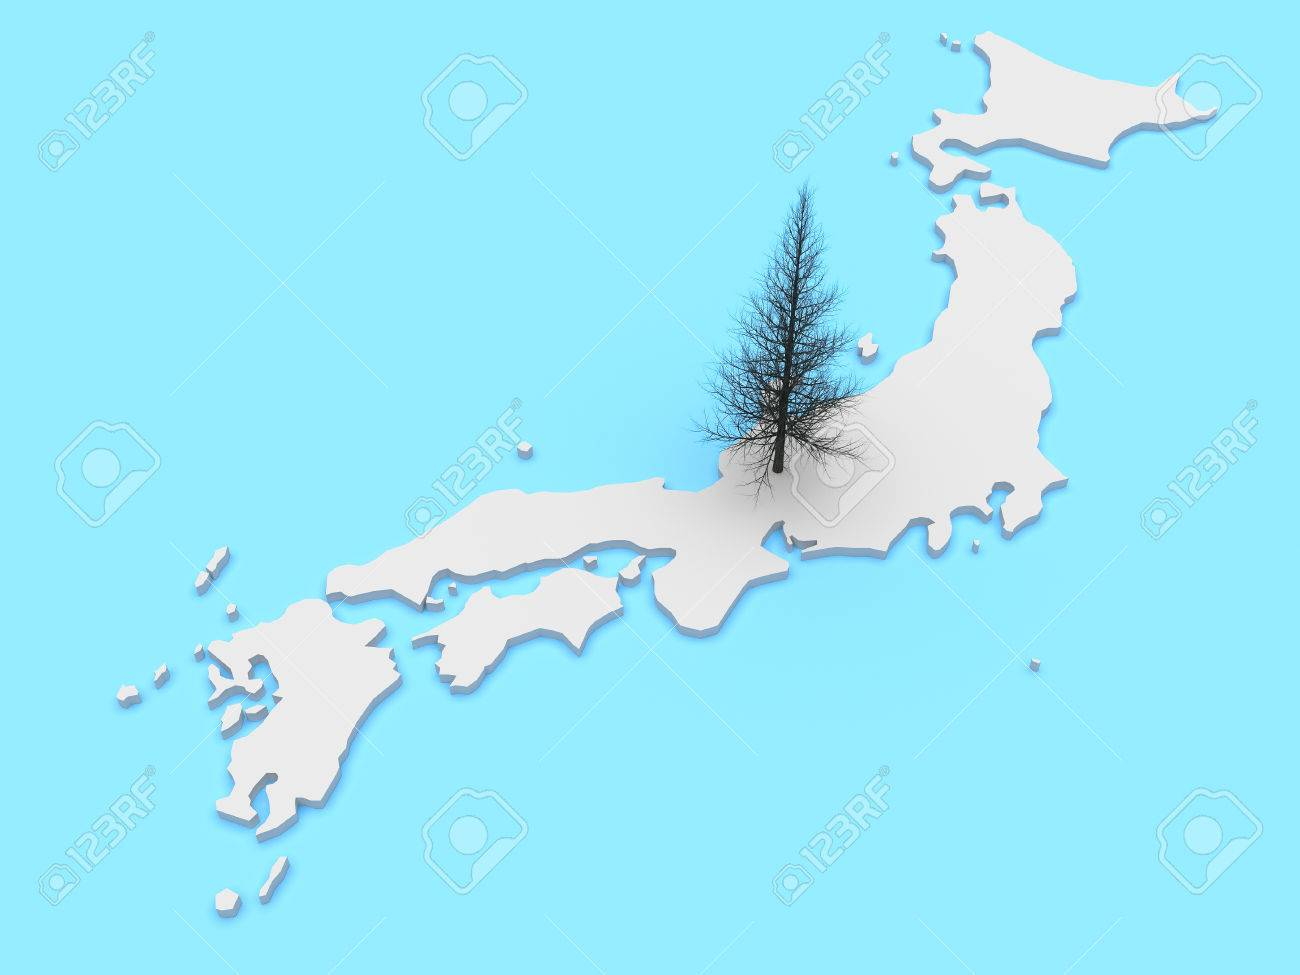 3d Illustration Of Japan Map With Pine Tree As Japanese Symbol